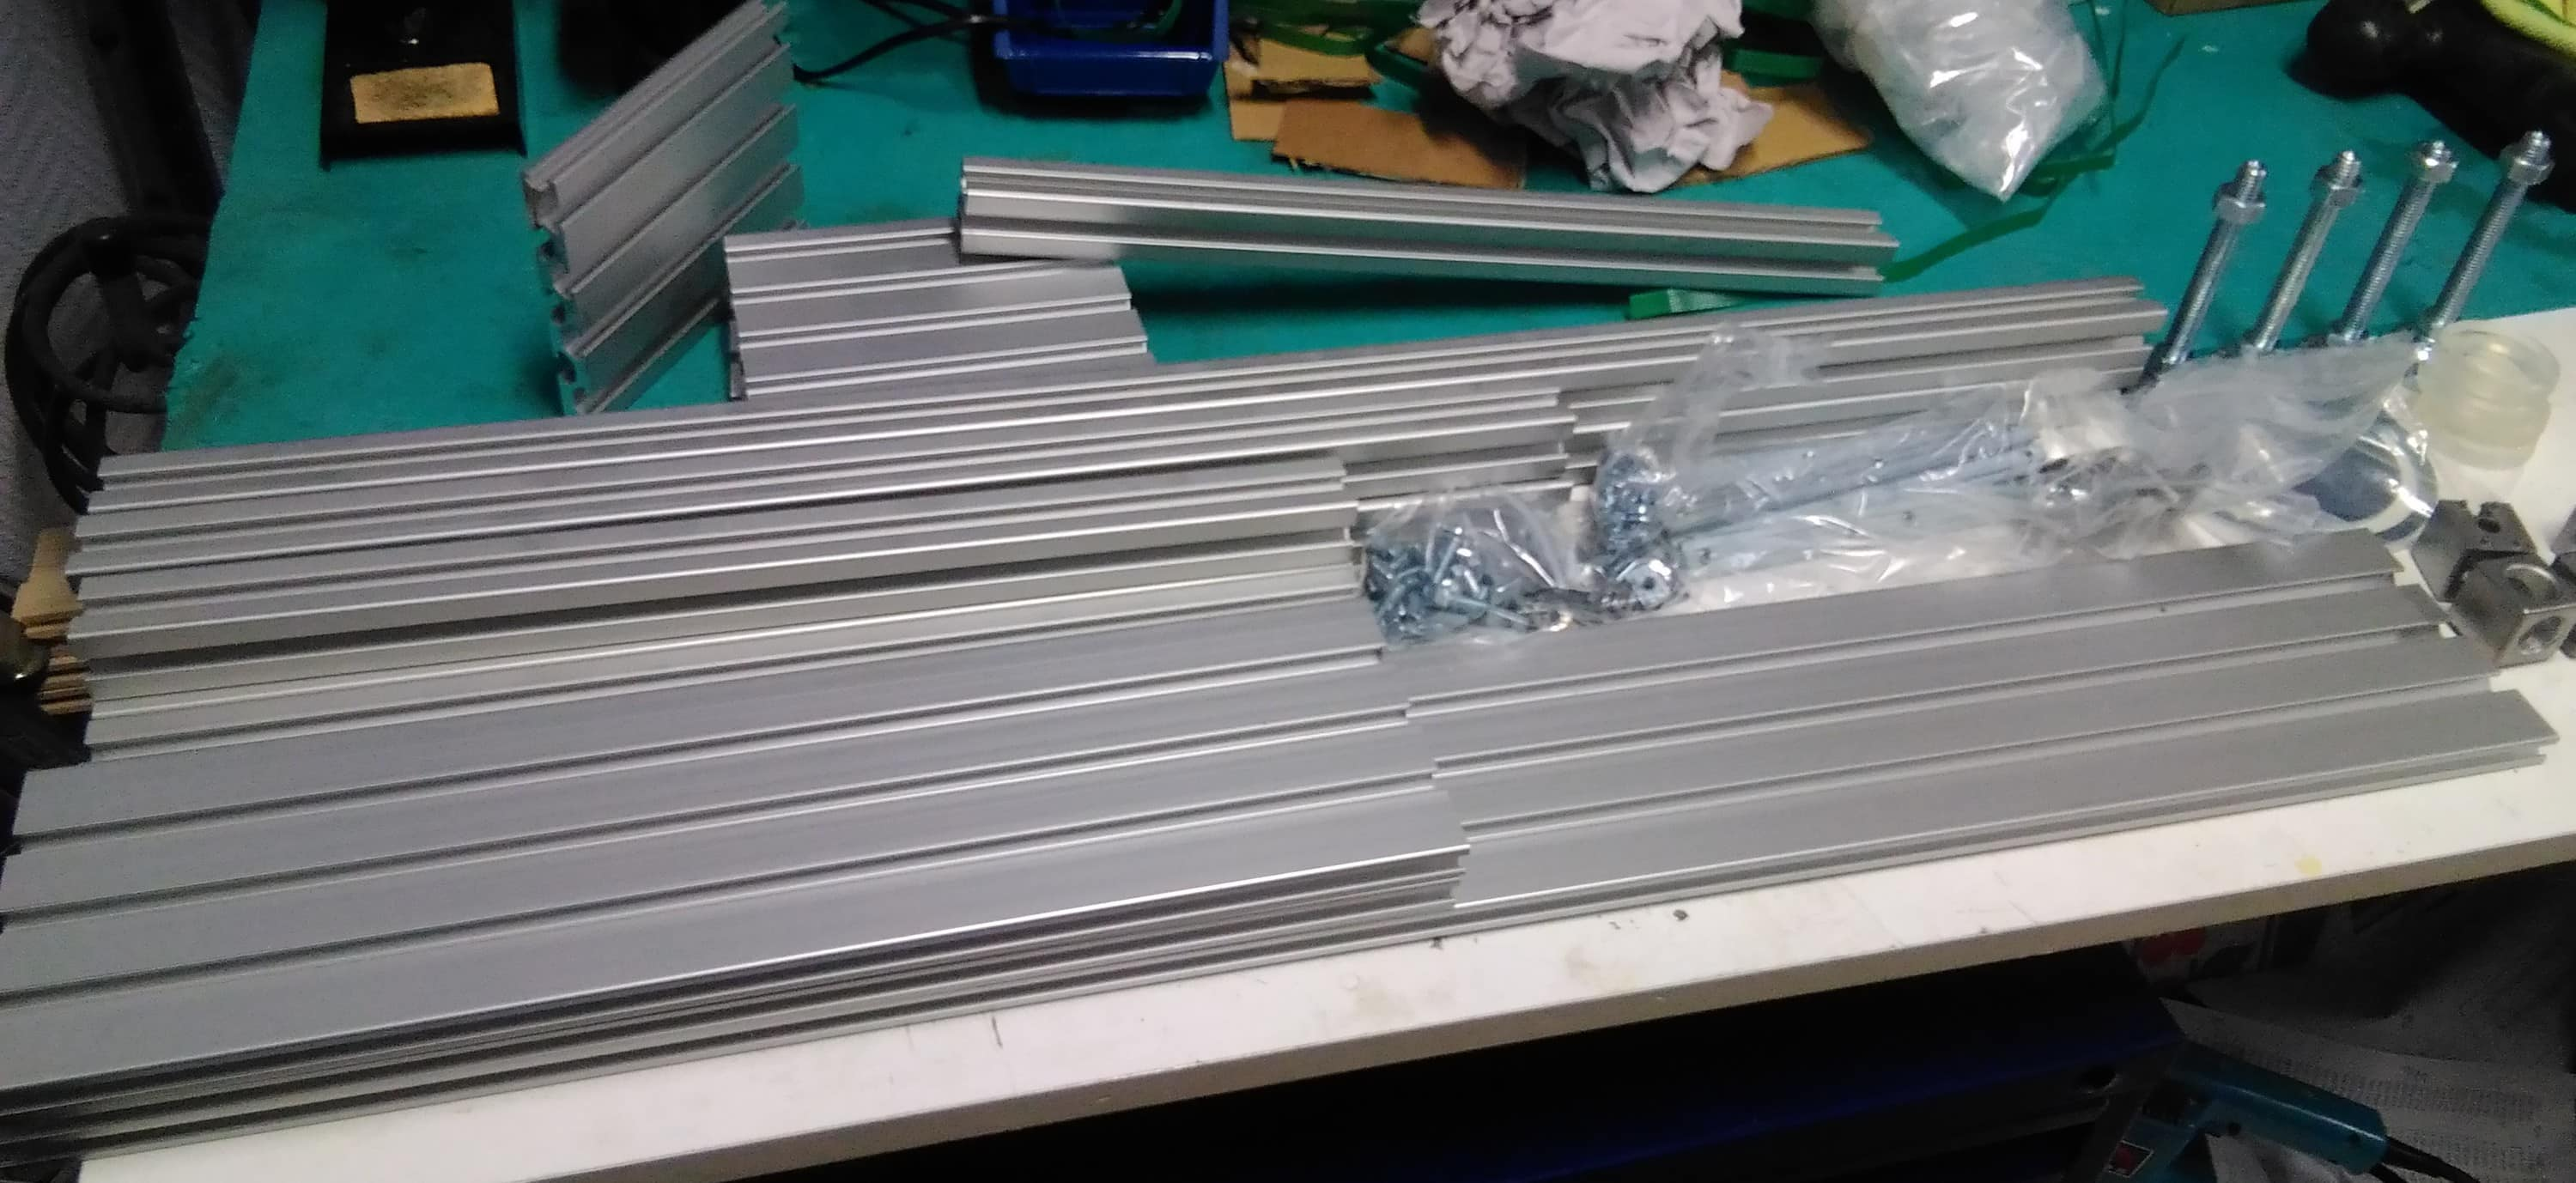 Aluminum Router Fence Build – The Blog of Ivan Krizsan